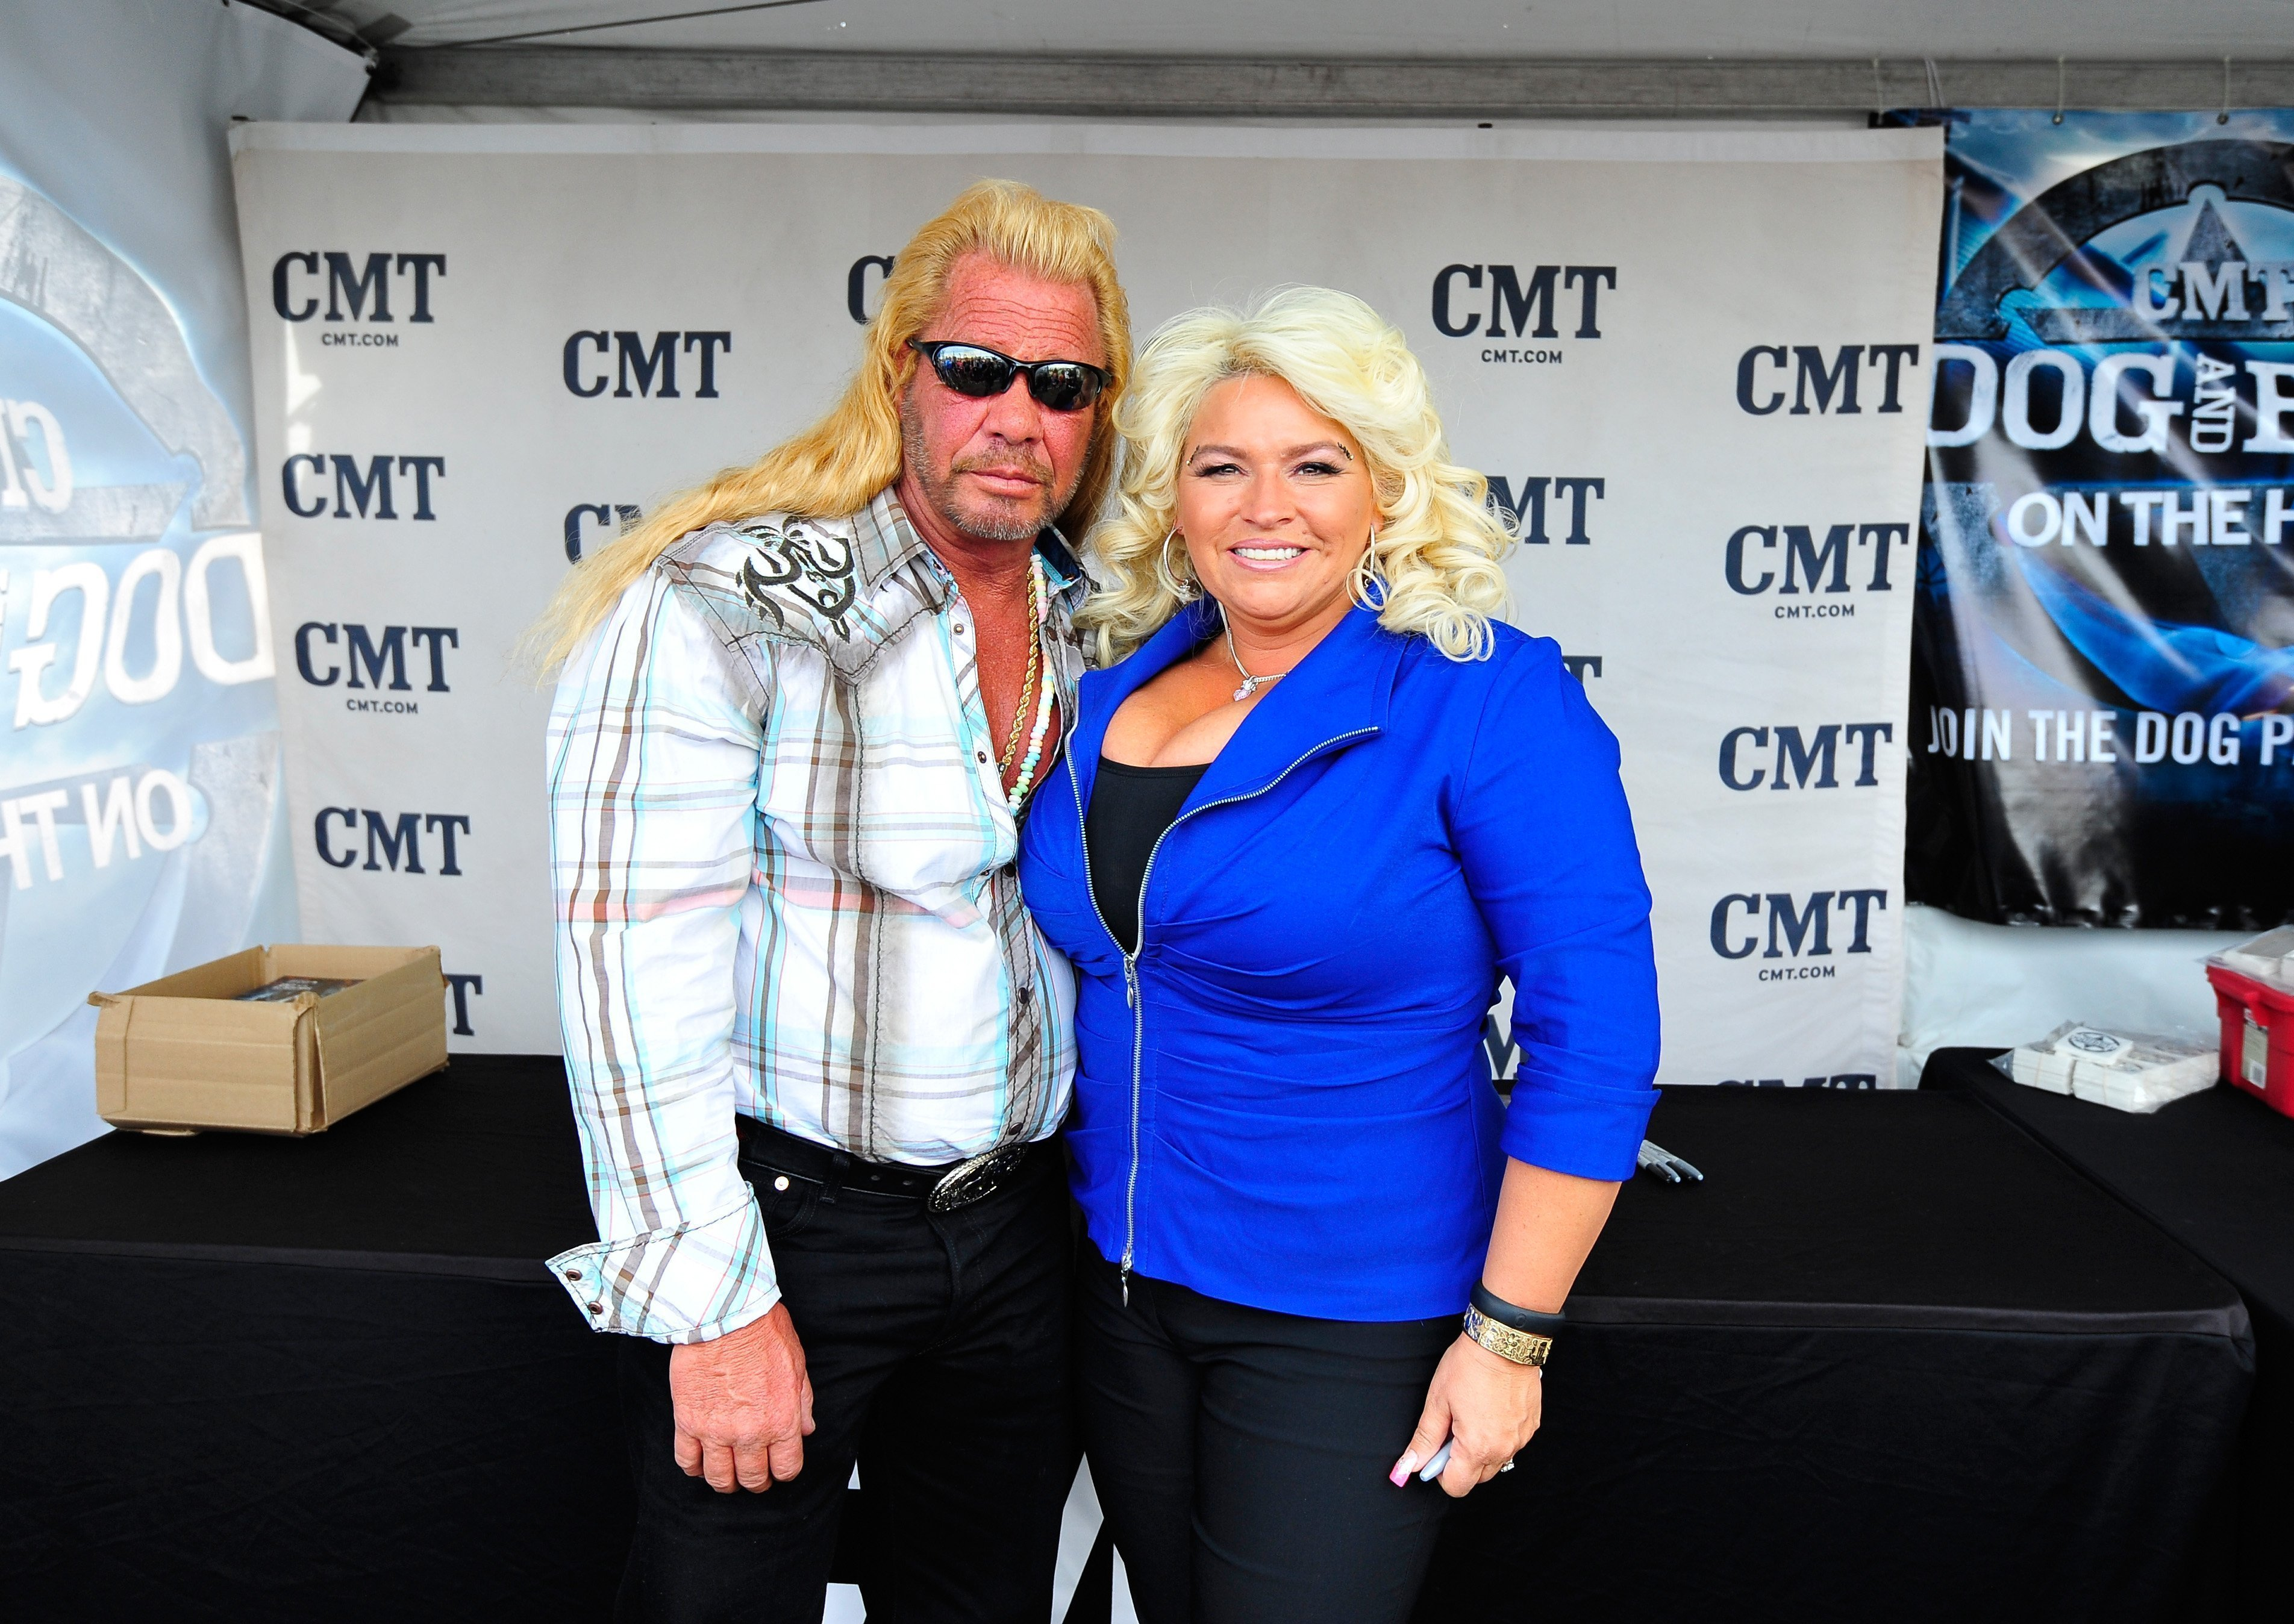 Duane 'Dog' and Beth Chapman at the ACM Experience during the 48th Annual Academy of Country Music Awards on April 5, 2013 in Las Vegas, Nevada | Photo: Getty Images